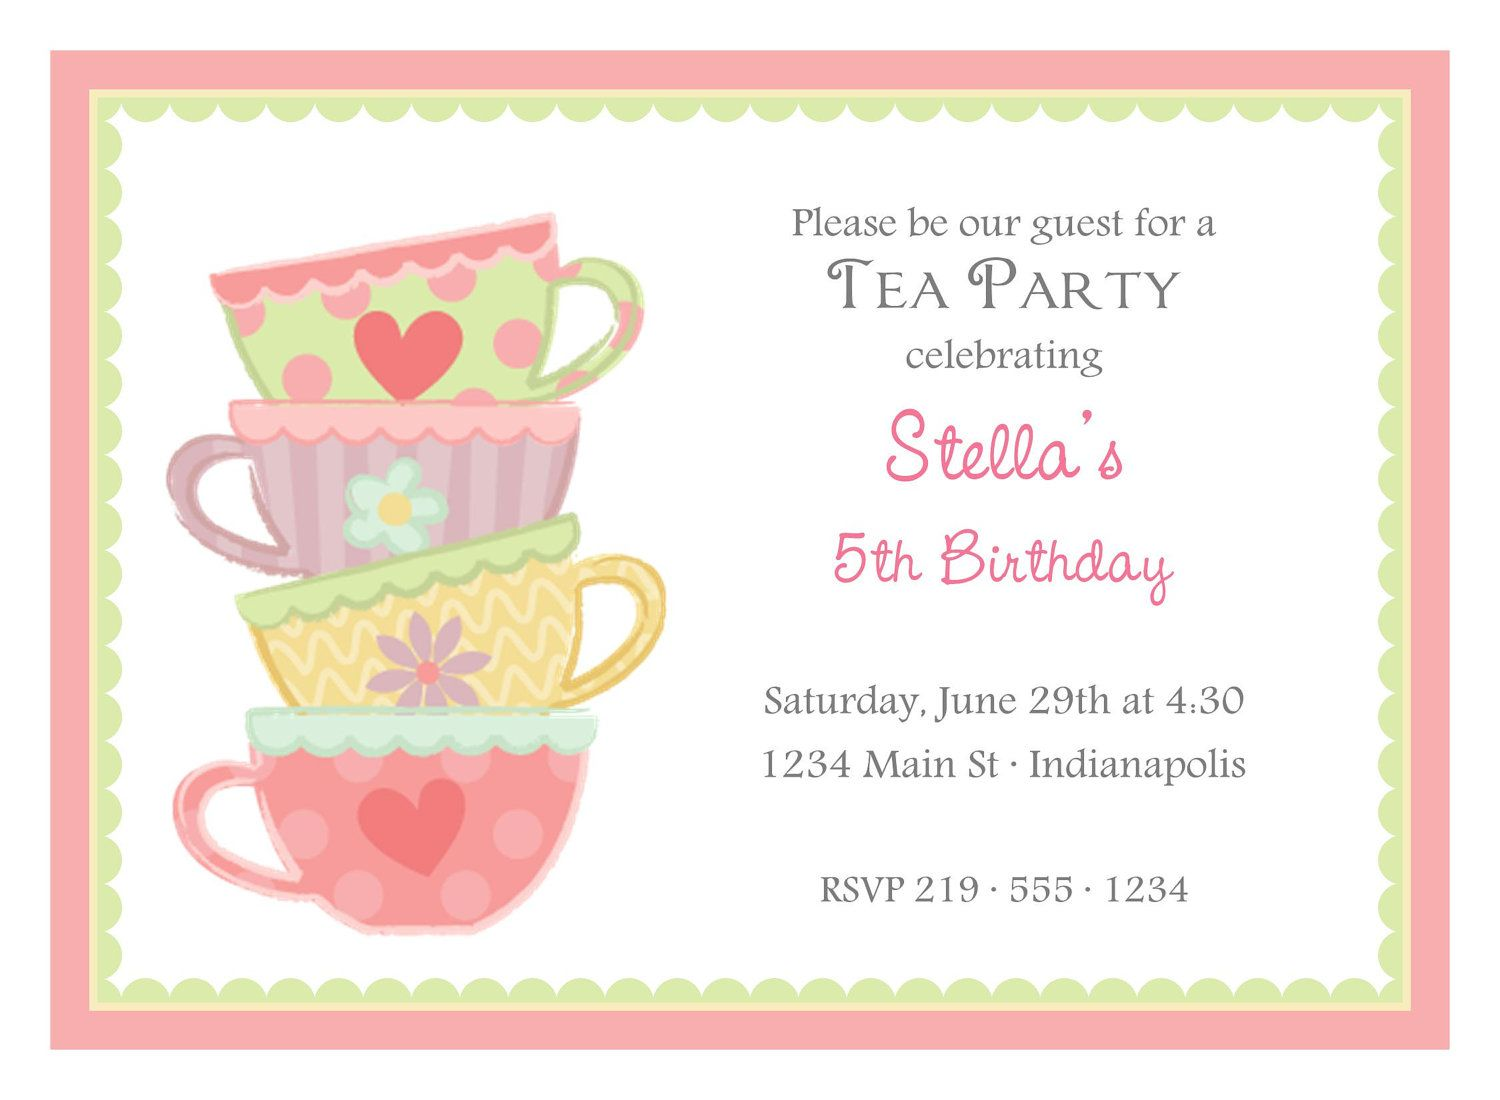 tea party invitation template - Google Search | Tea Party ...